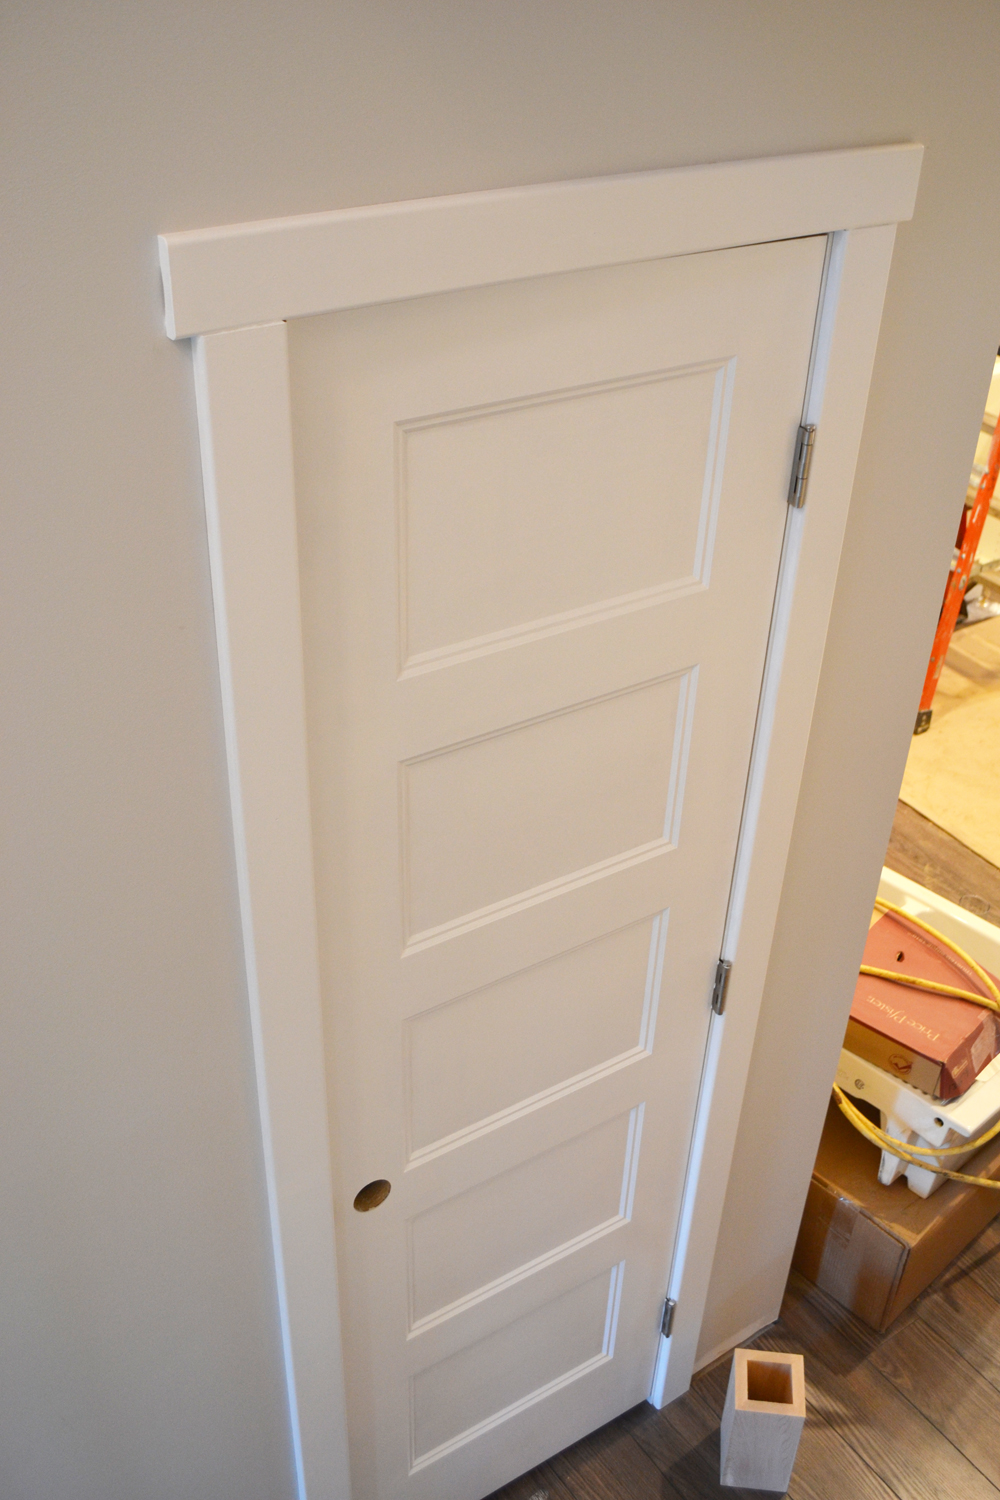 painting doors with a streak-free finish (+ where we found our